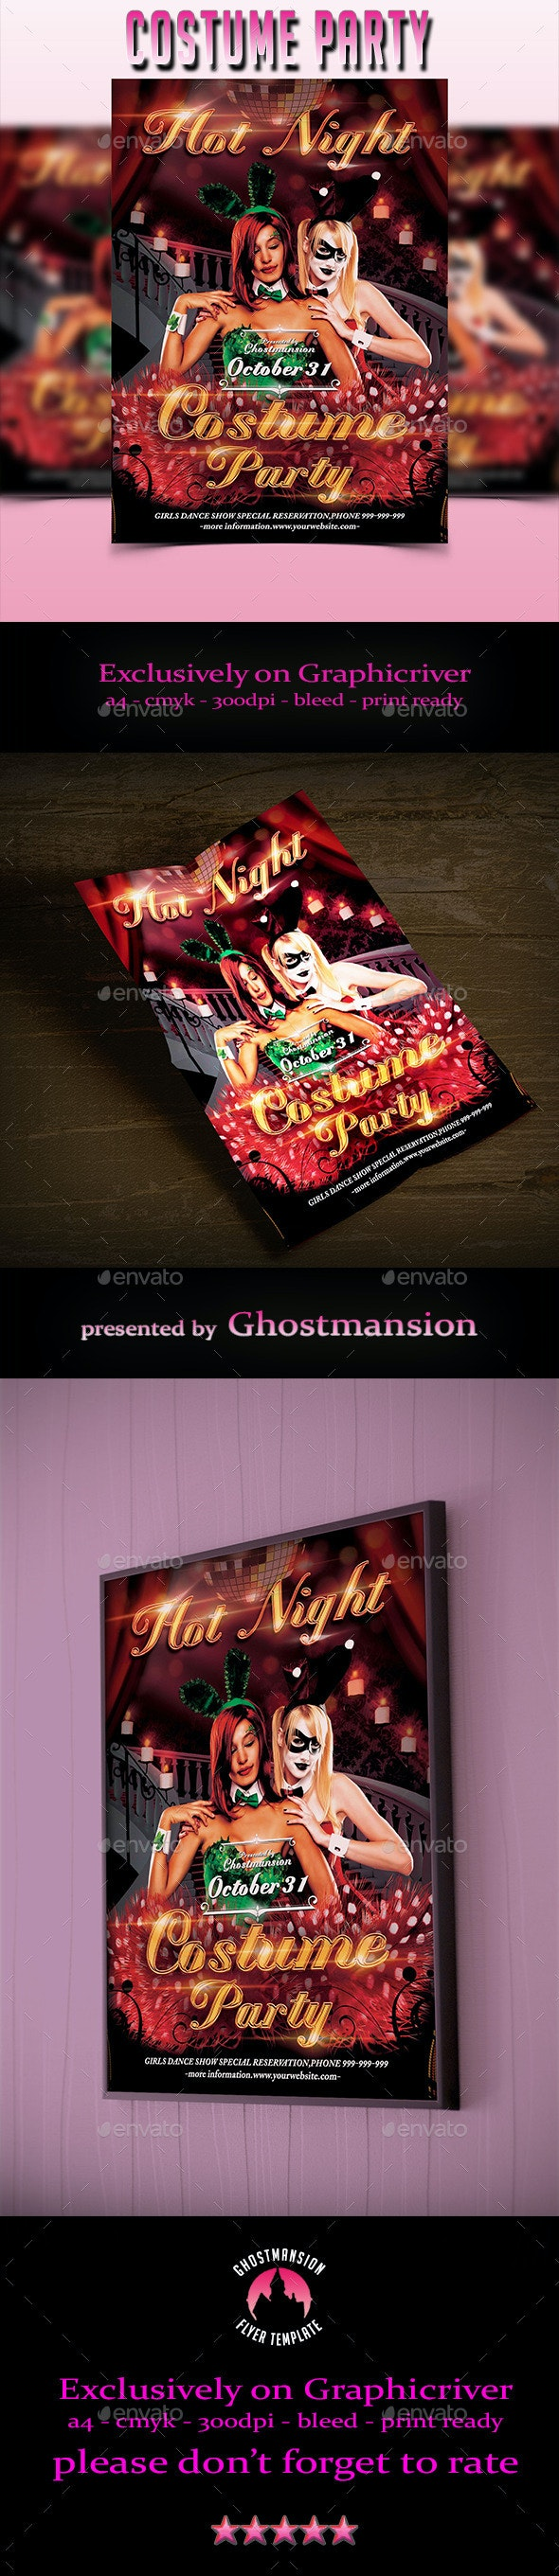 Costume Party Flyer Template V1 - Clubs & Parties Events